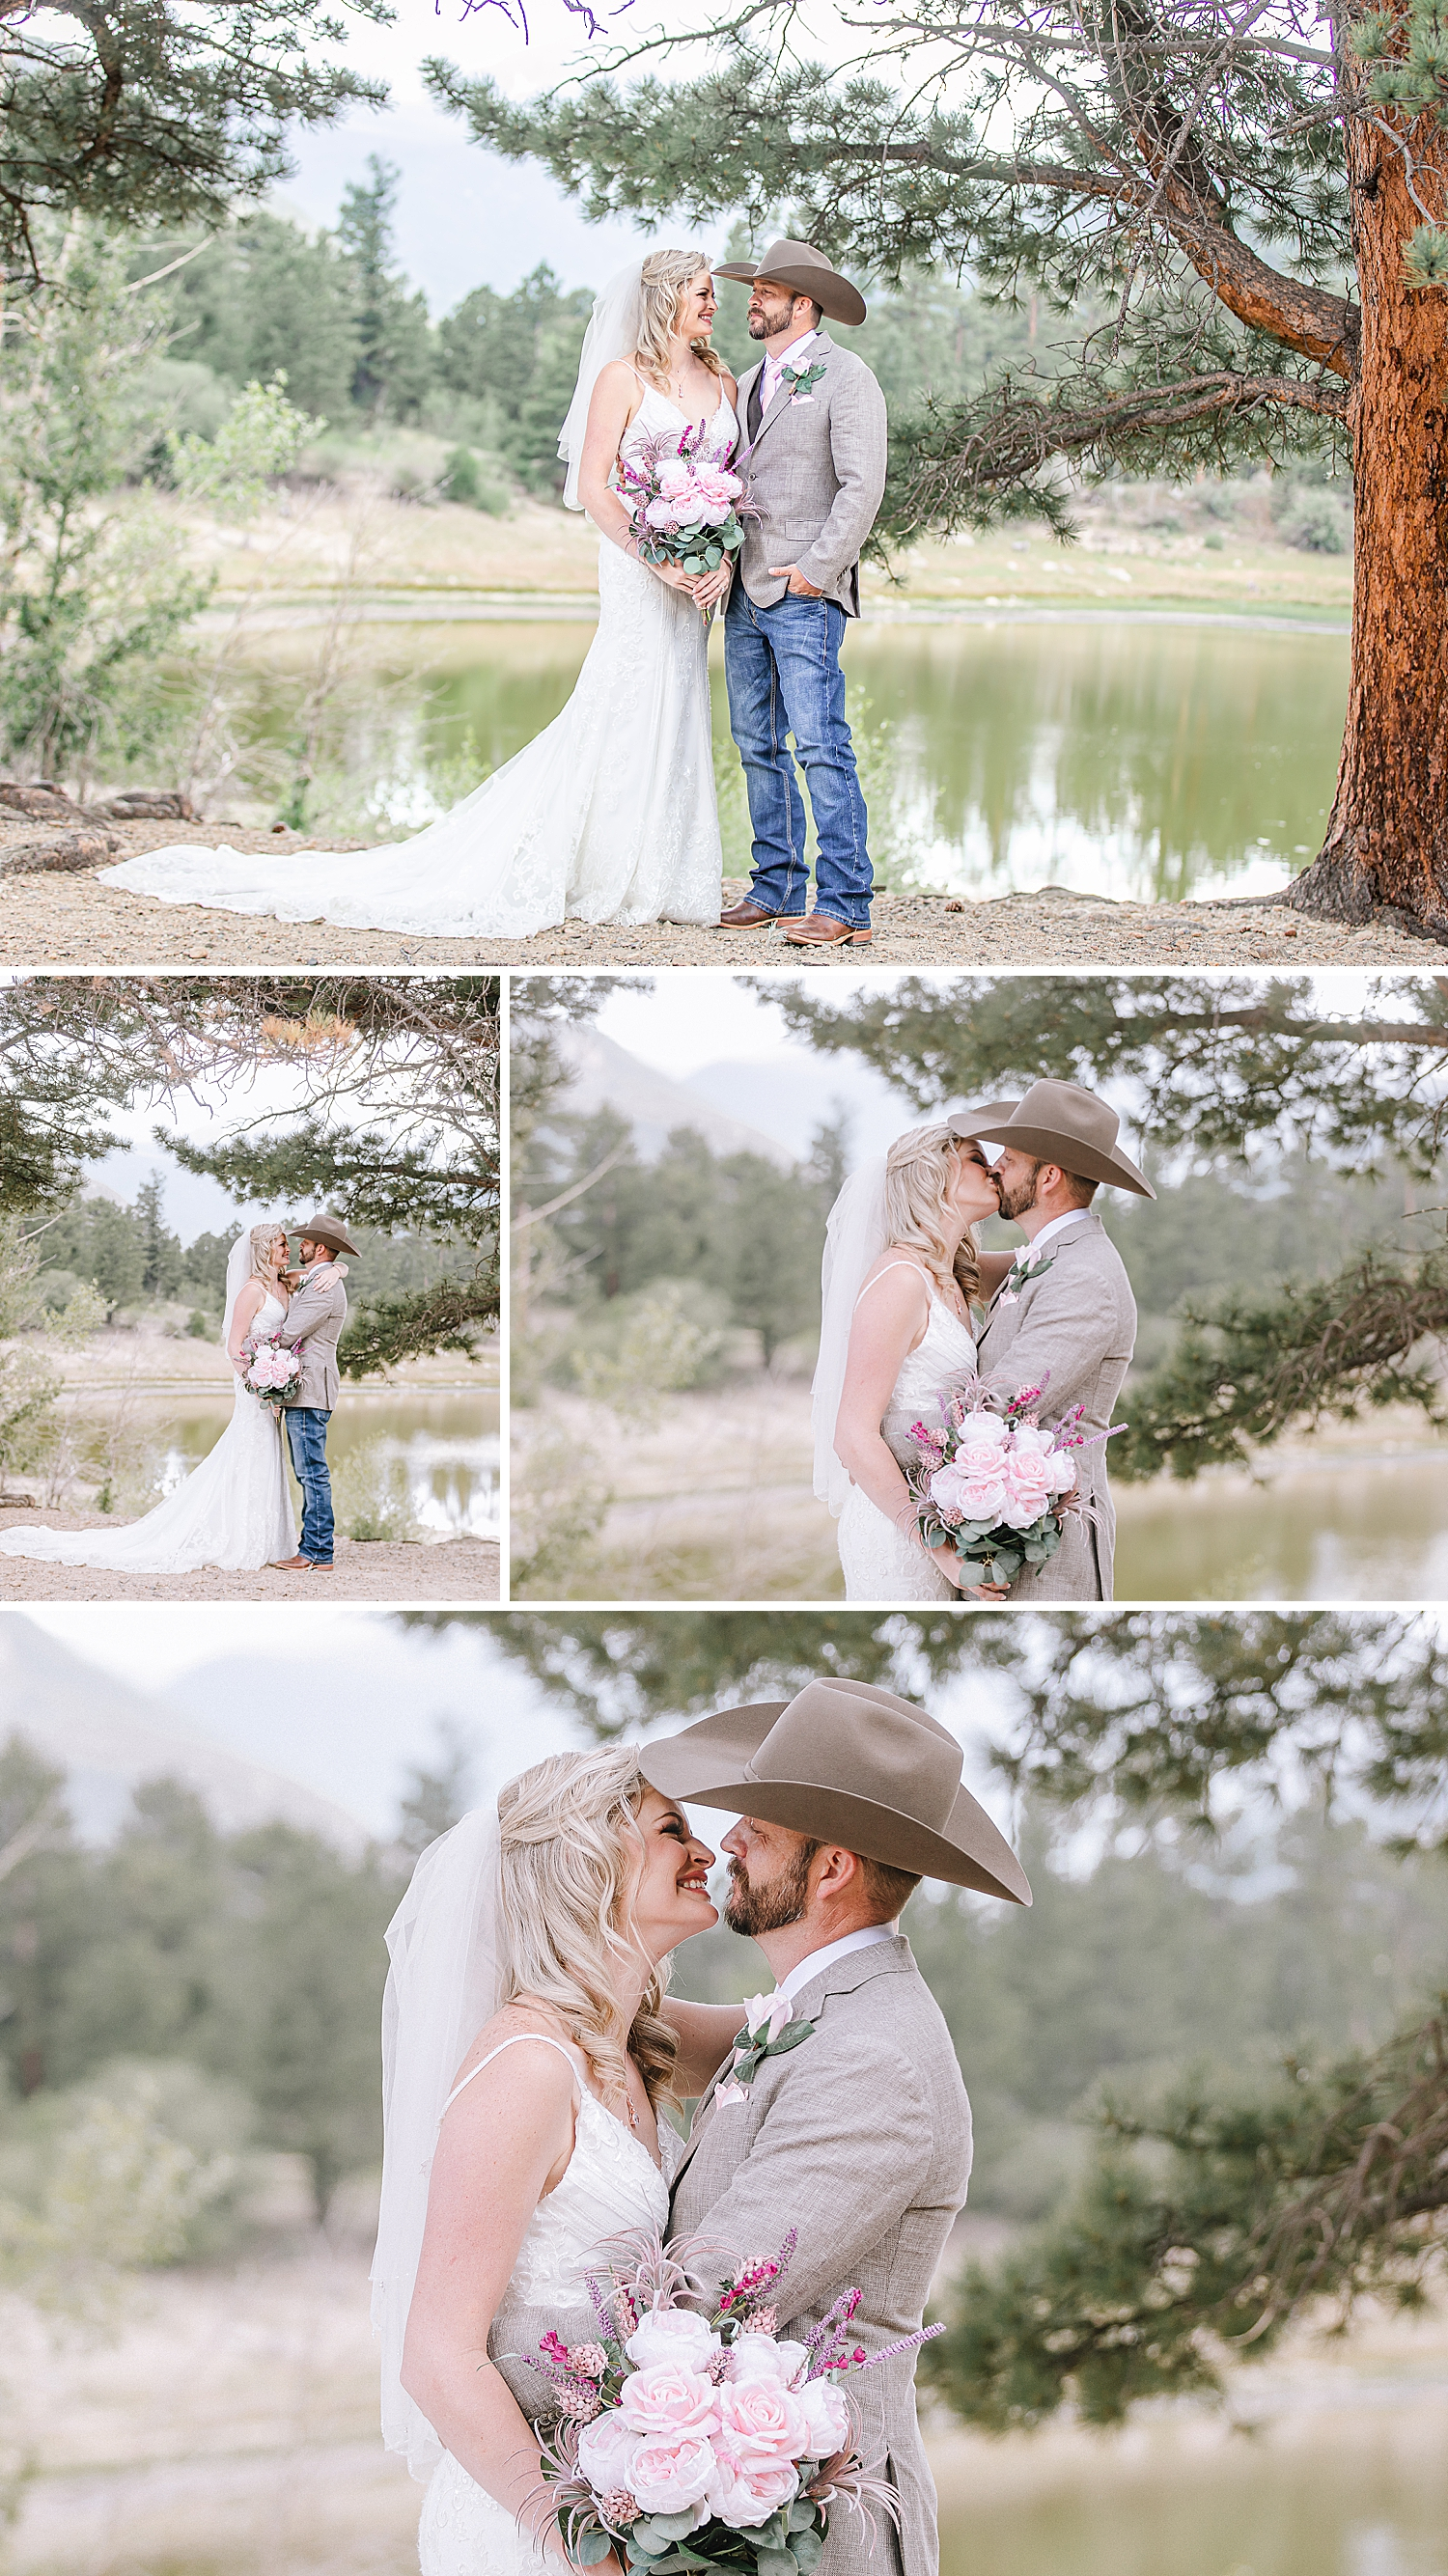 Carly-Barton-Photography-Rocky-Mountain-National-Park-Estes-Park-Wedding-Elopement_0035.jpg